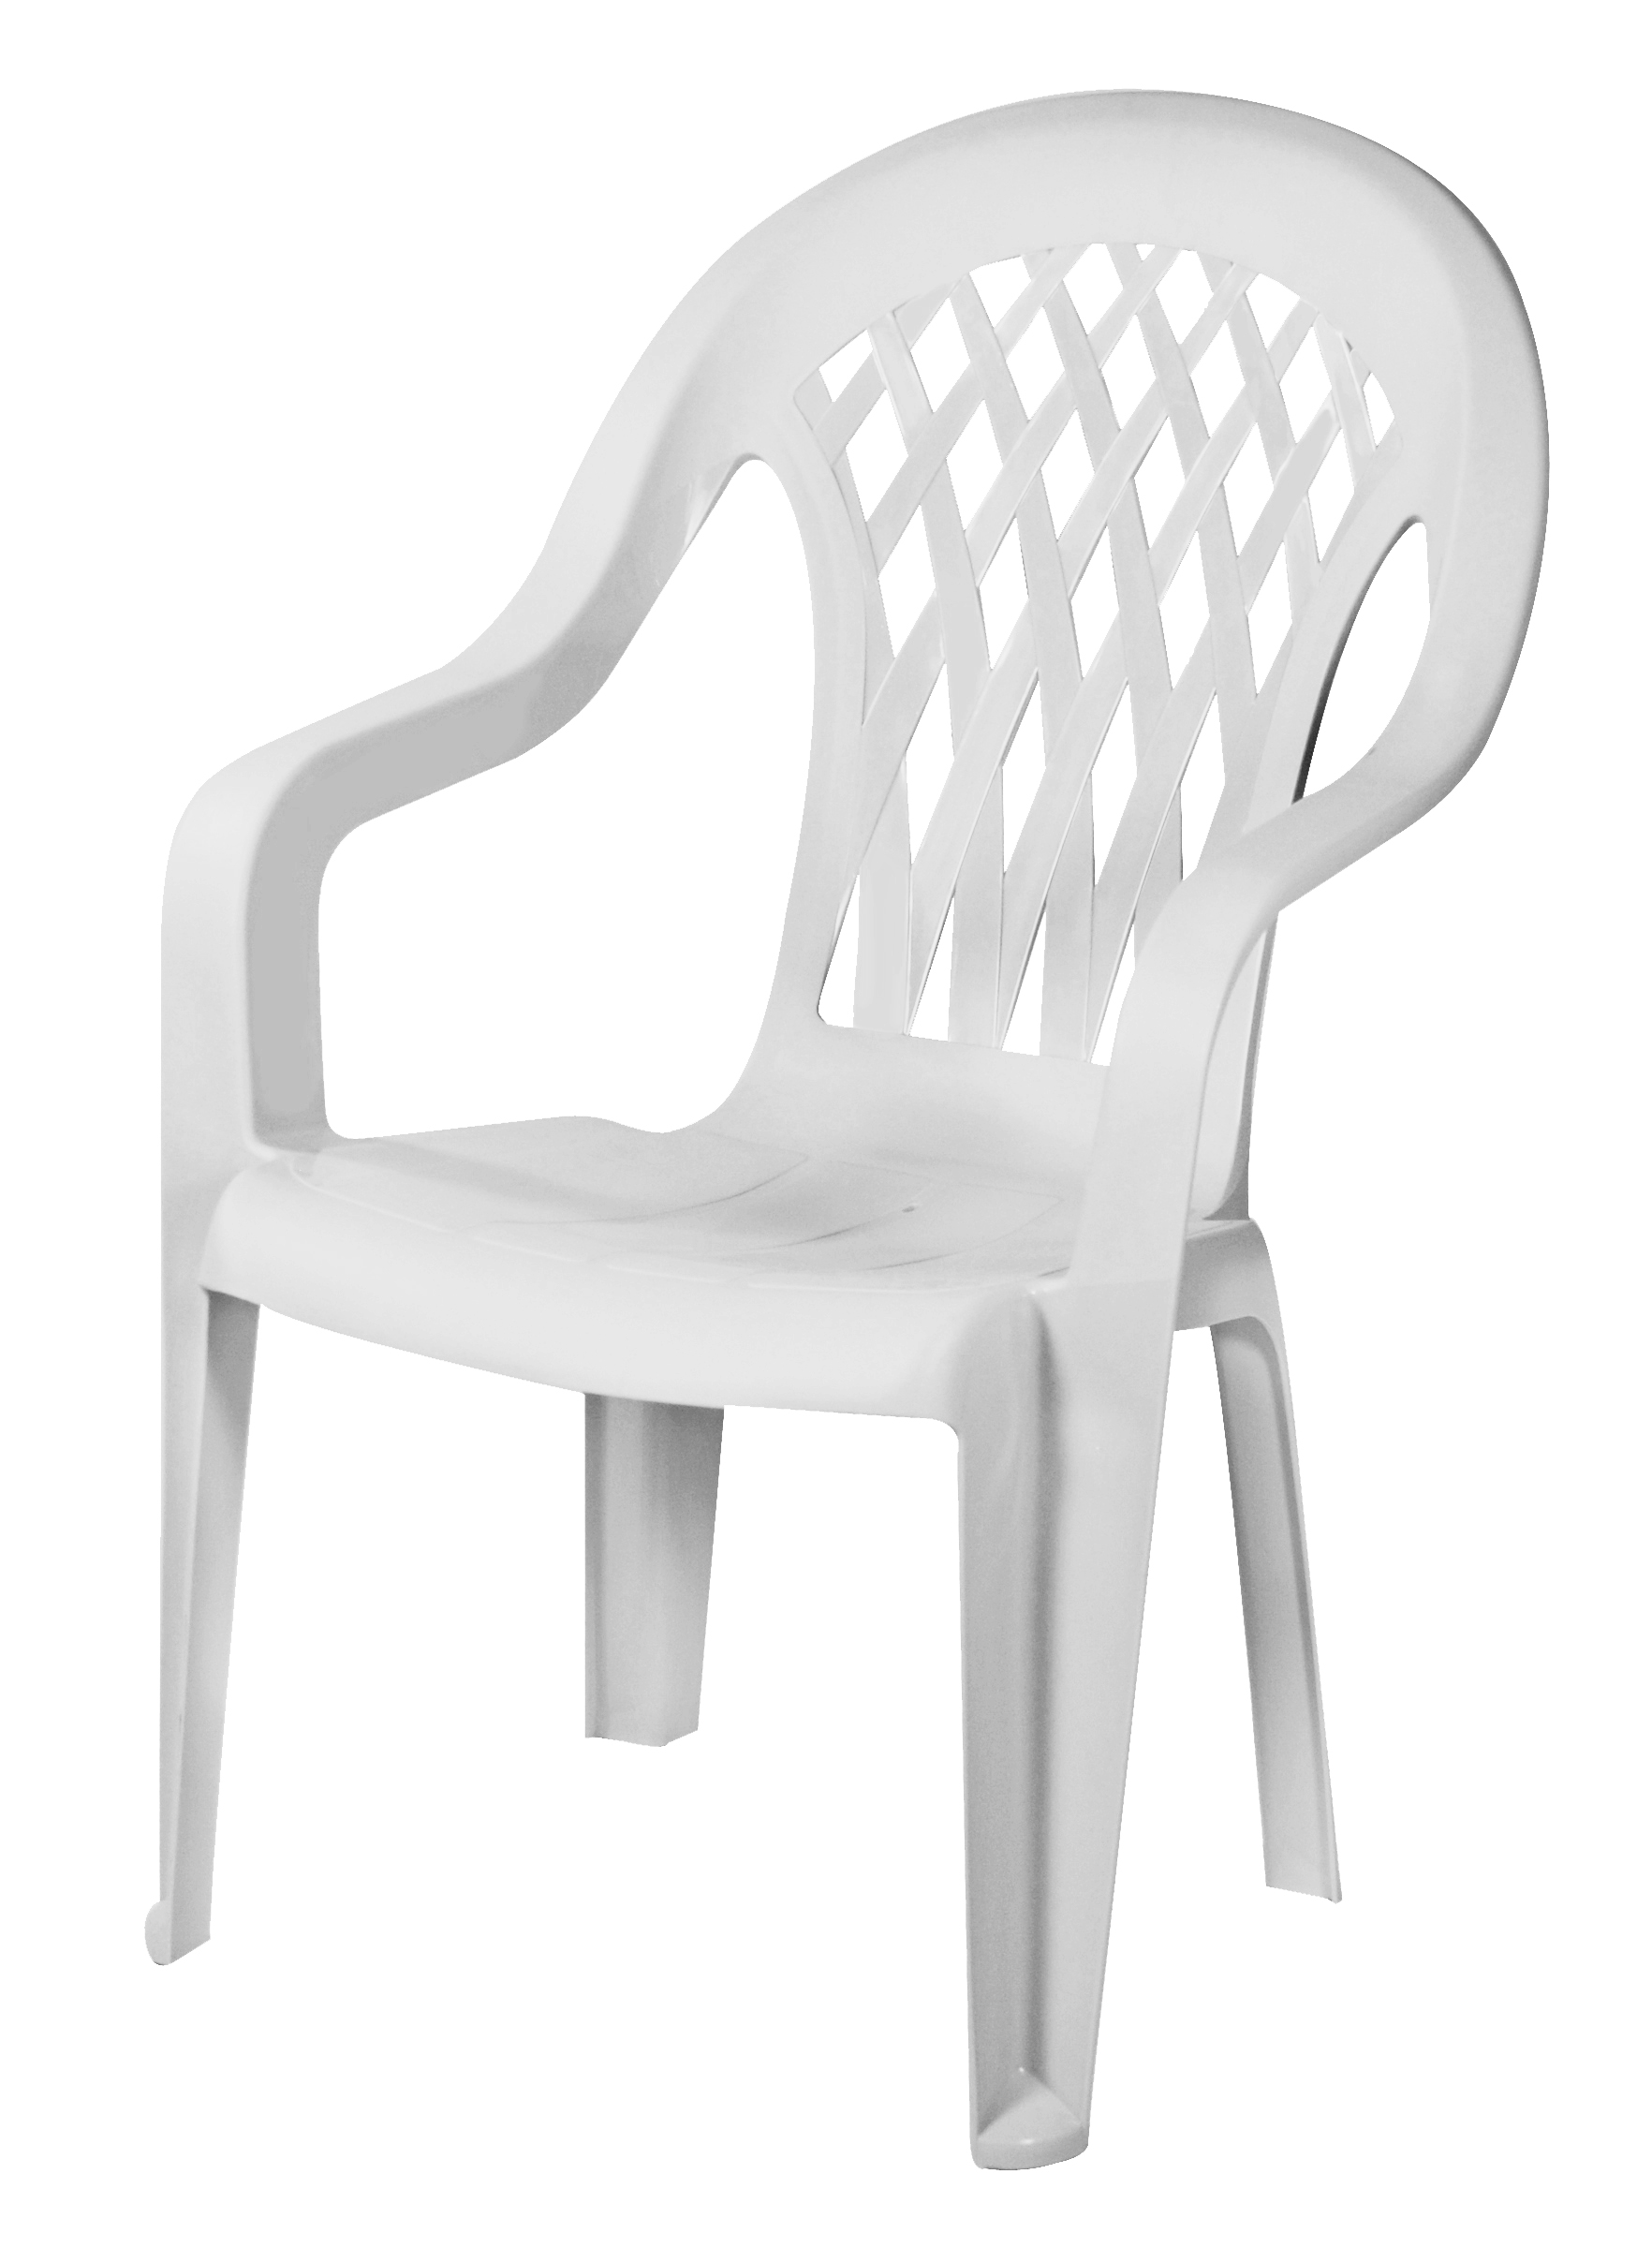 White Plastic Patio Chairs Gracious Living Lattice High Back Chair White